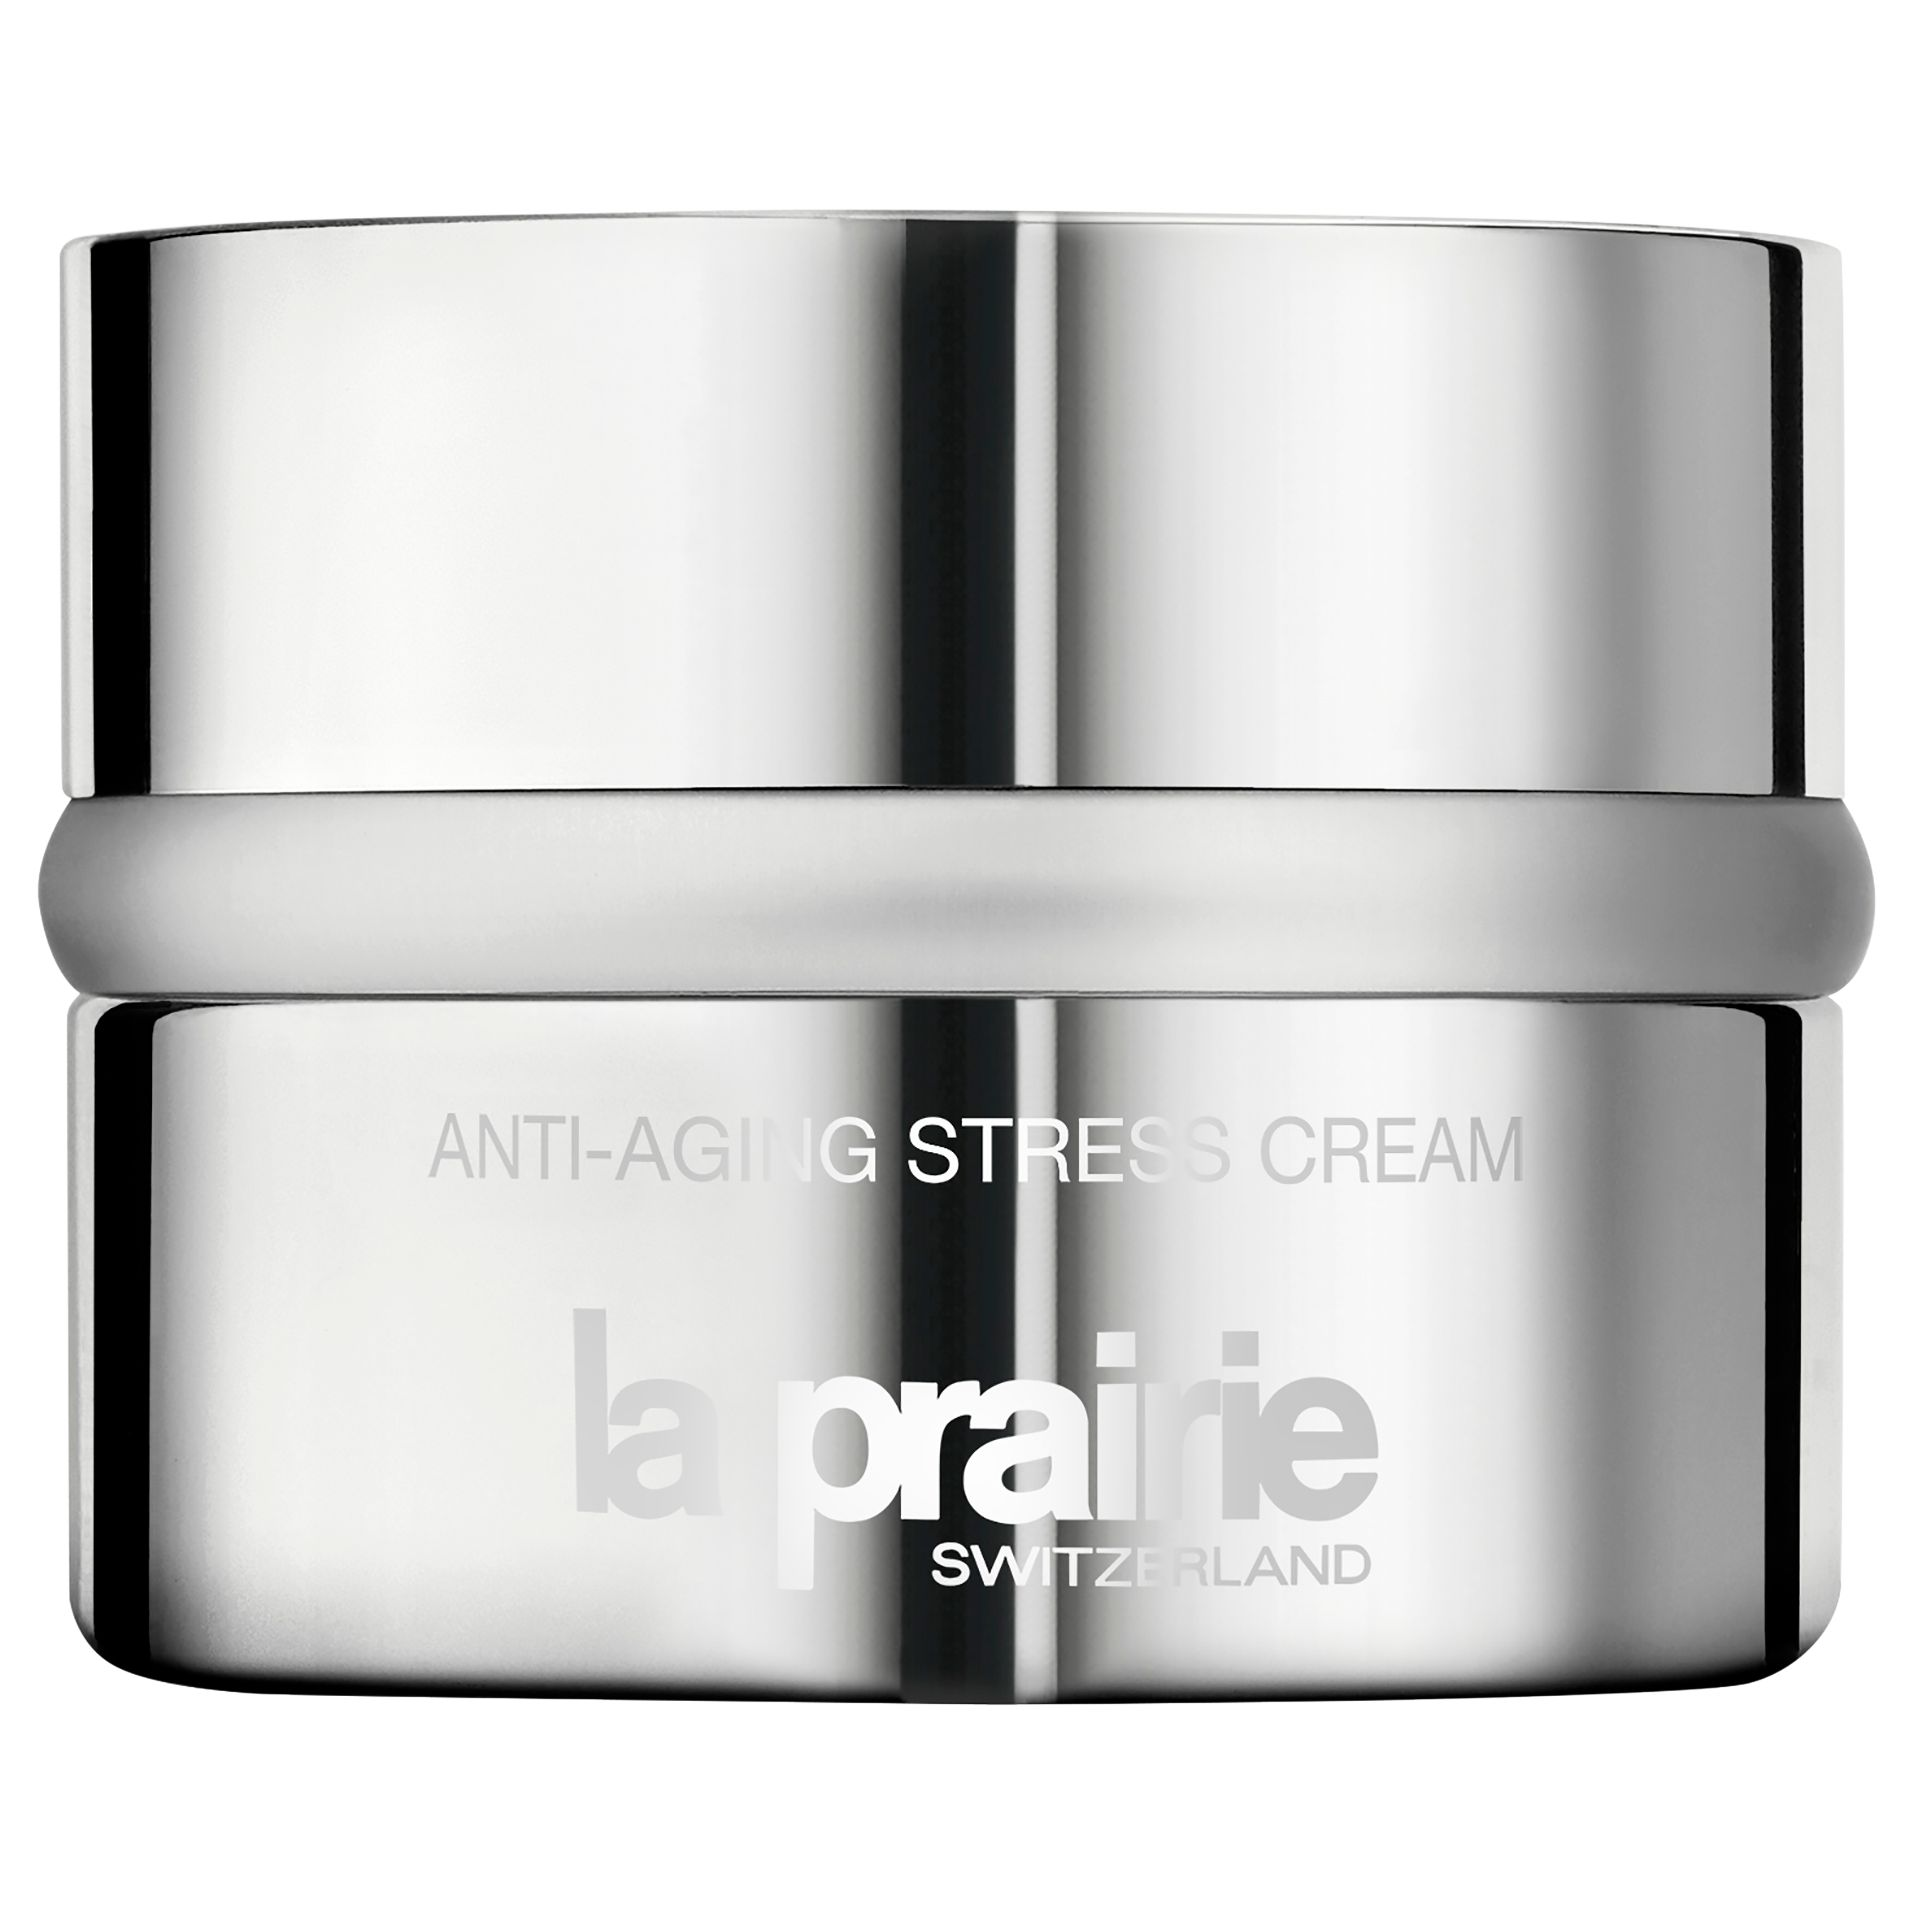 La Prairie La Prairie Anti-Aging Stress Cream, 50ml